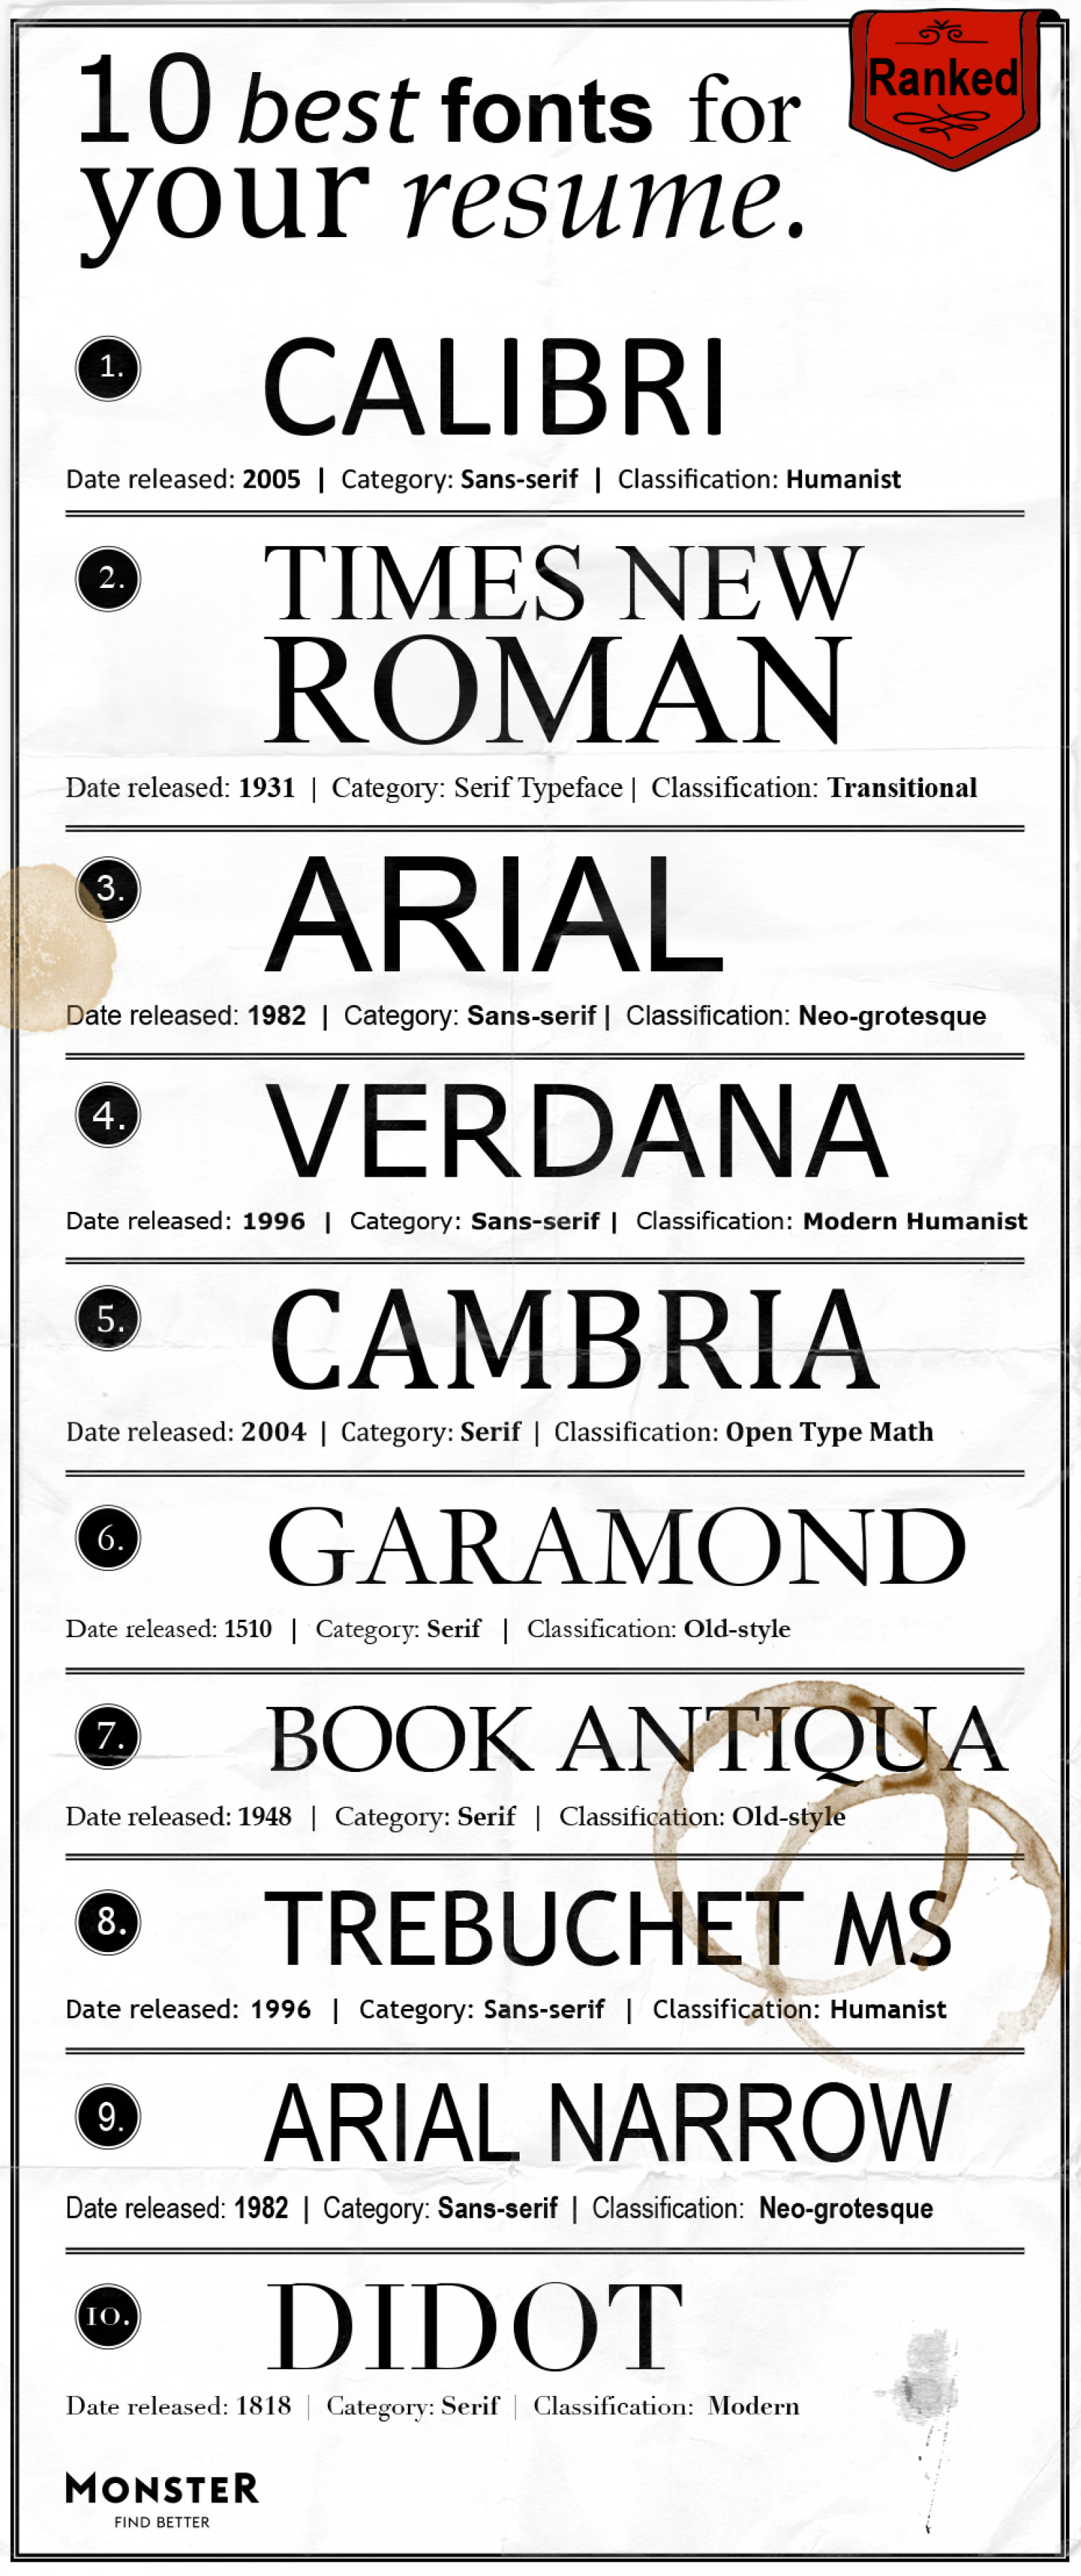 High Quality The Best Fonts For Your Resume, Ranked Infographic Inside What Is The Best Font For Resumes